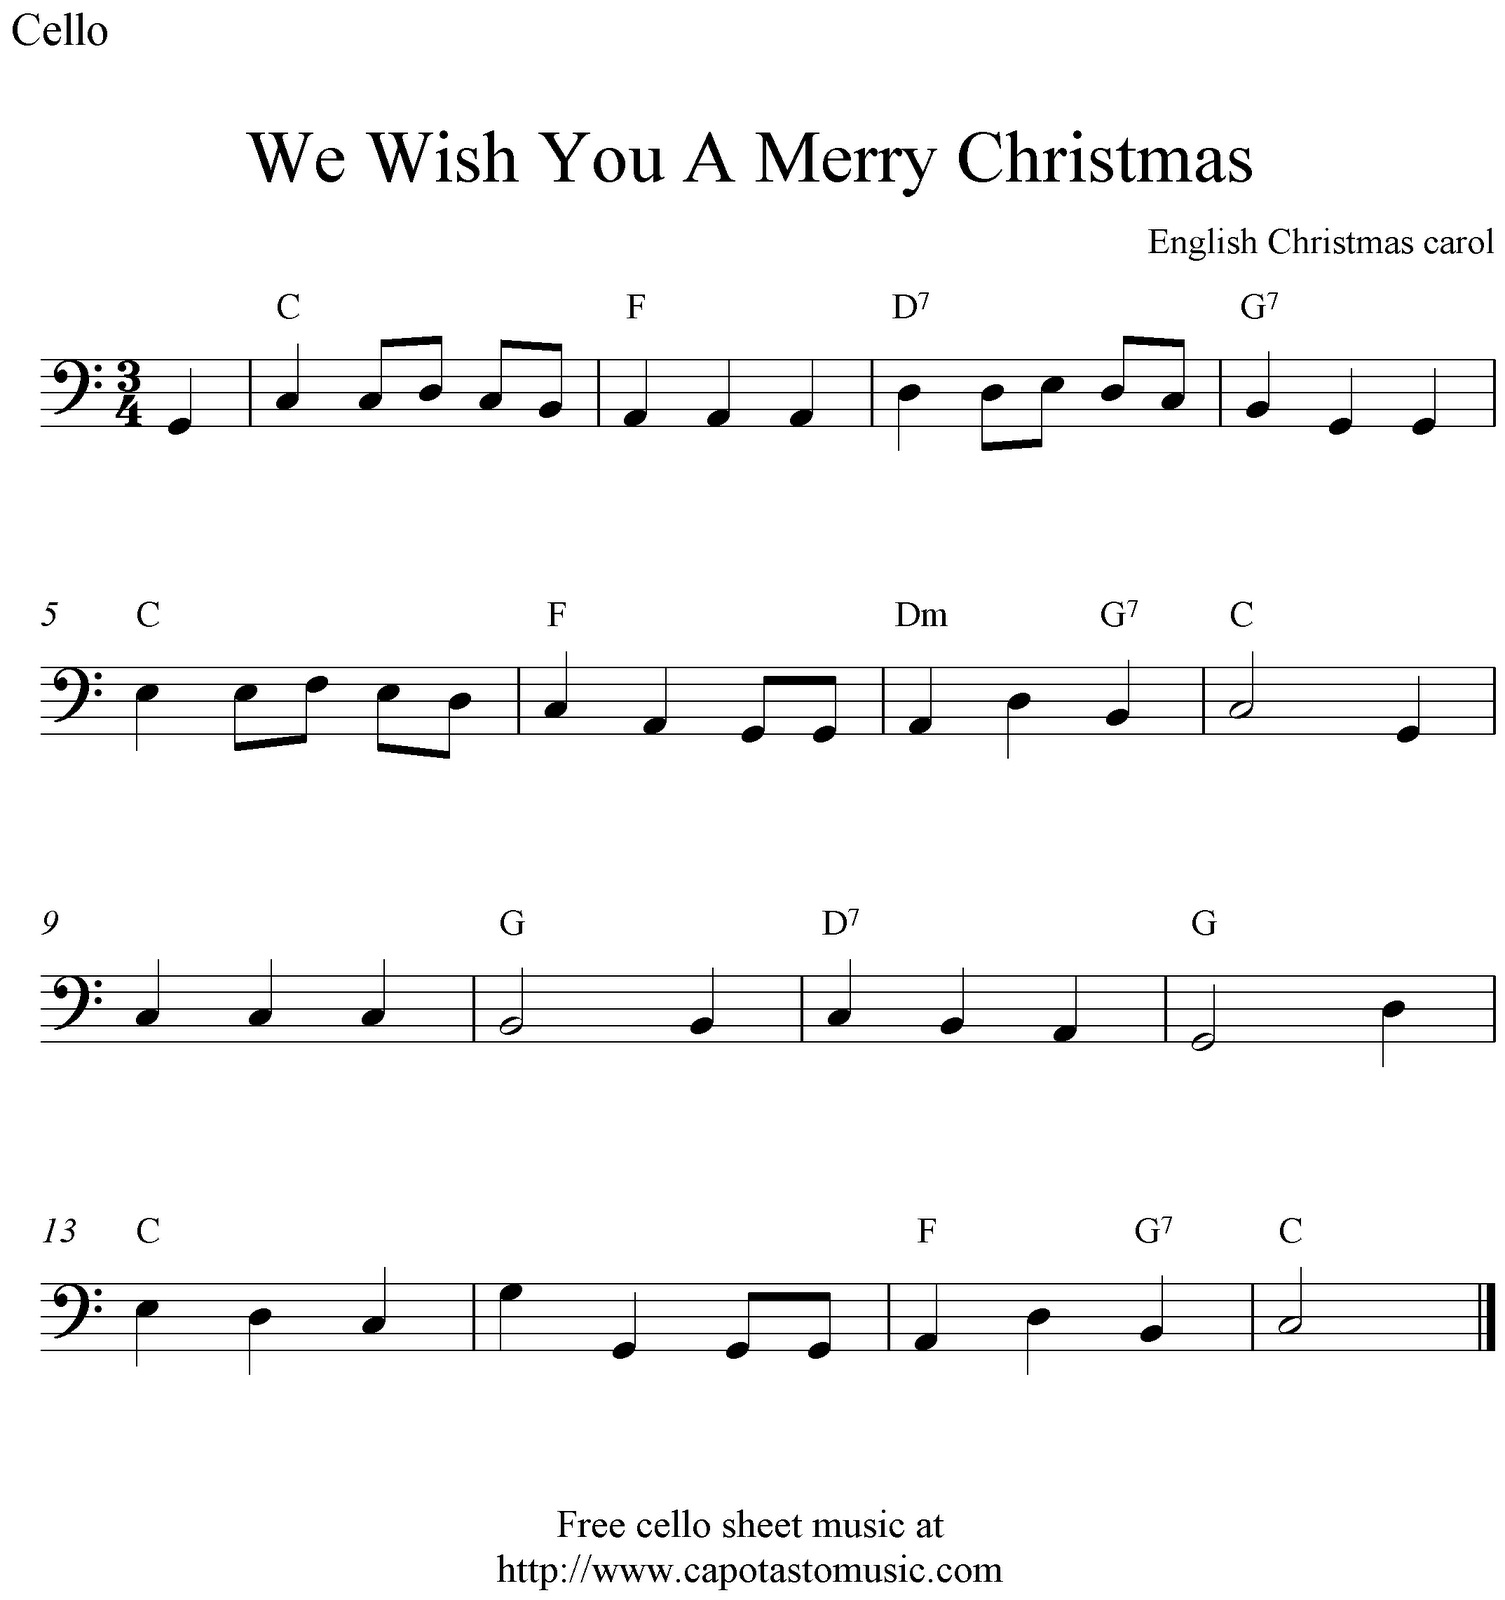 Free Christmas Cello Sheet Music, We Wish You A Merry